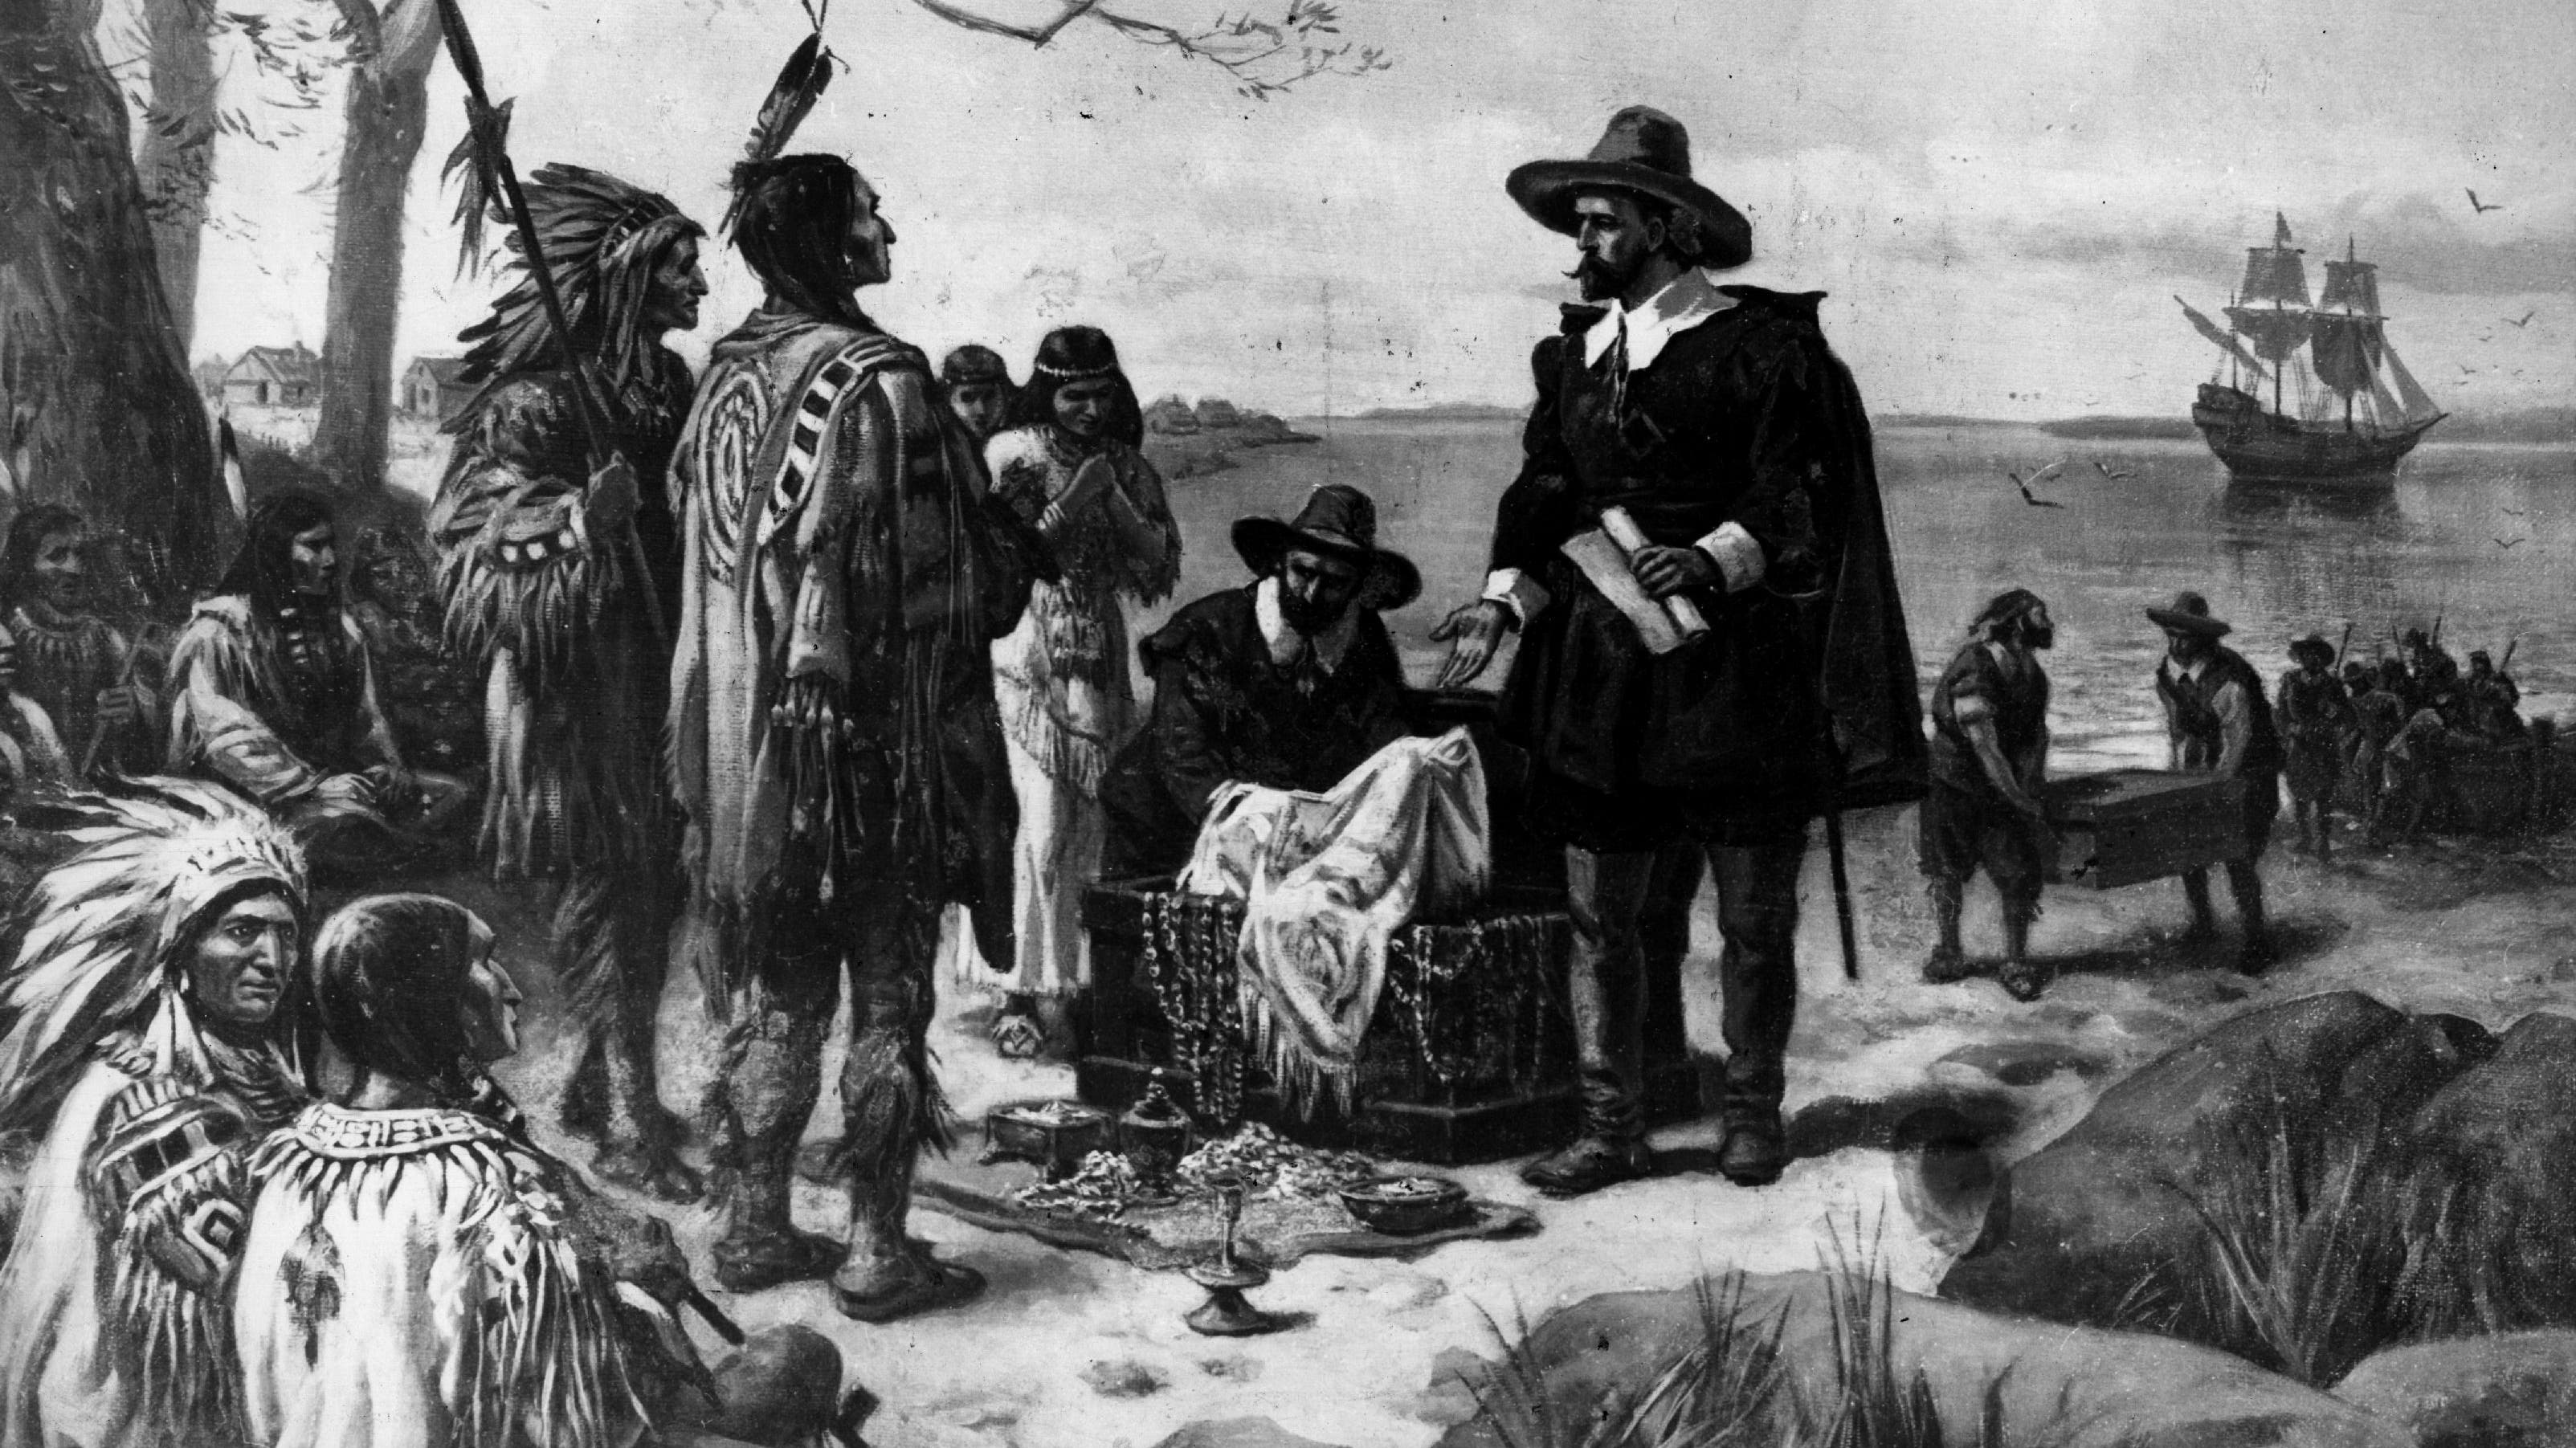 a look at early american indians The shocking savagery of america's early history bernard bailyn, one of our greatest historians, shines his light on the nation's dark ages.